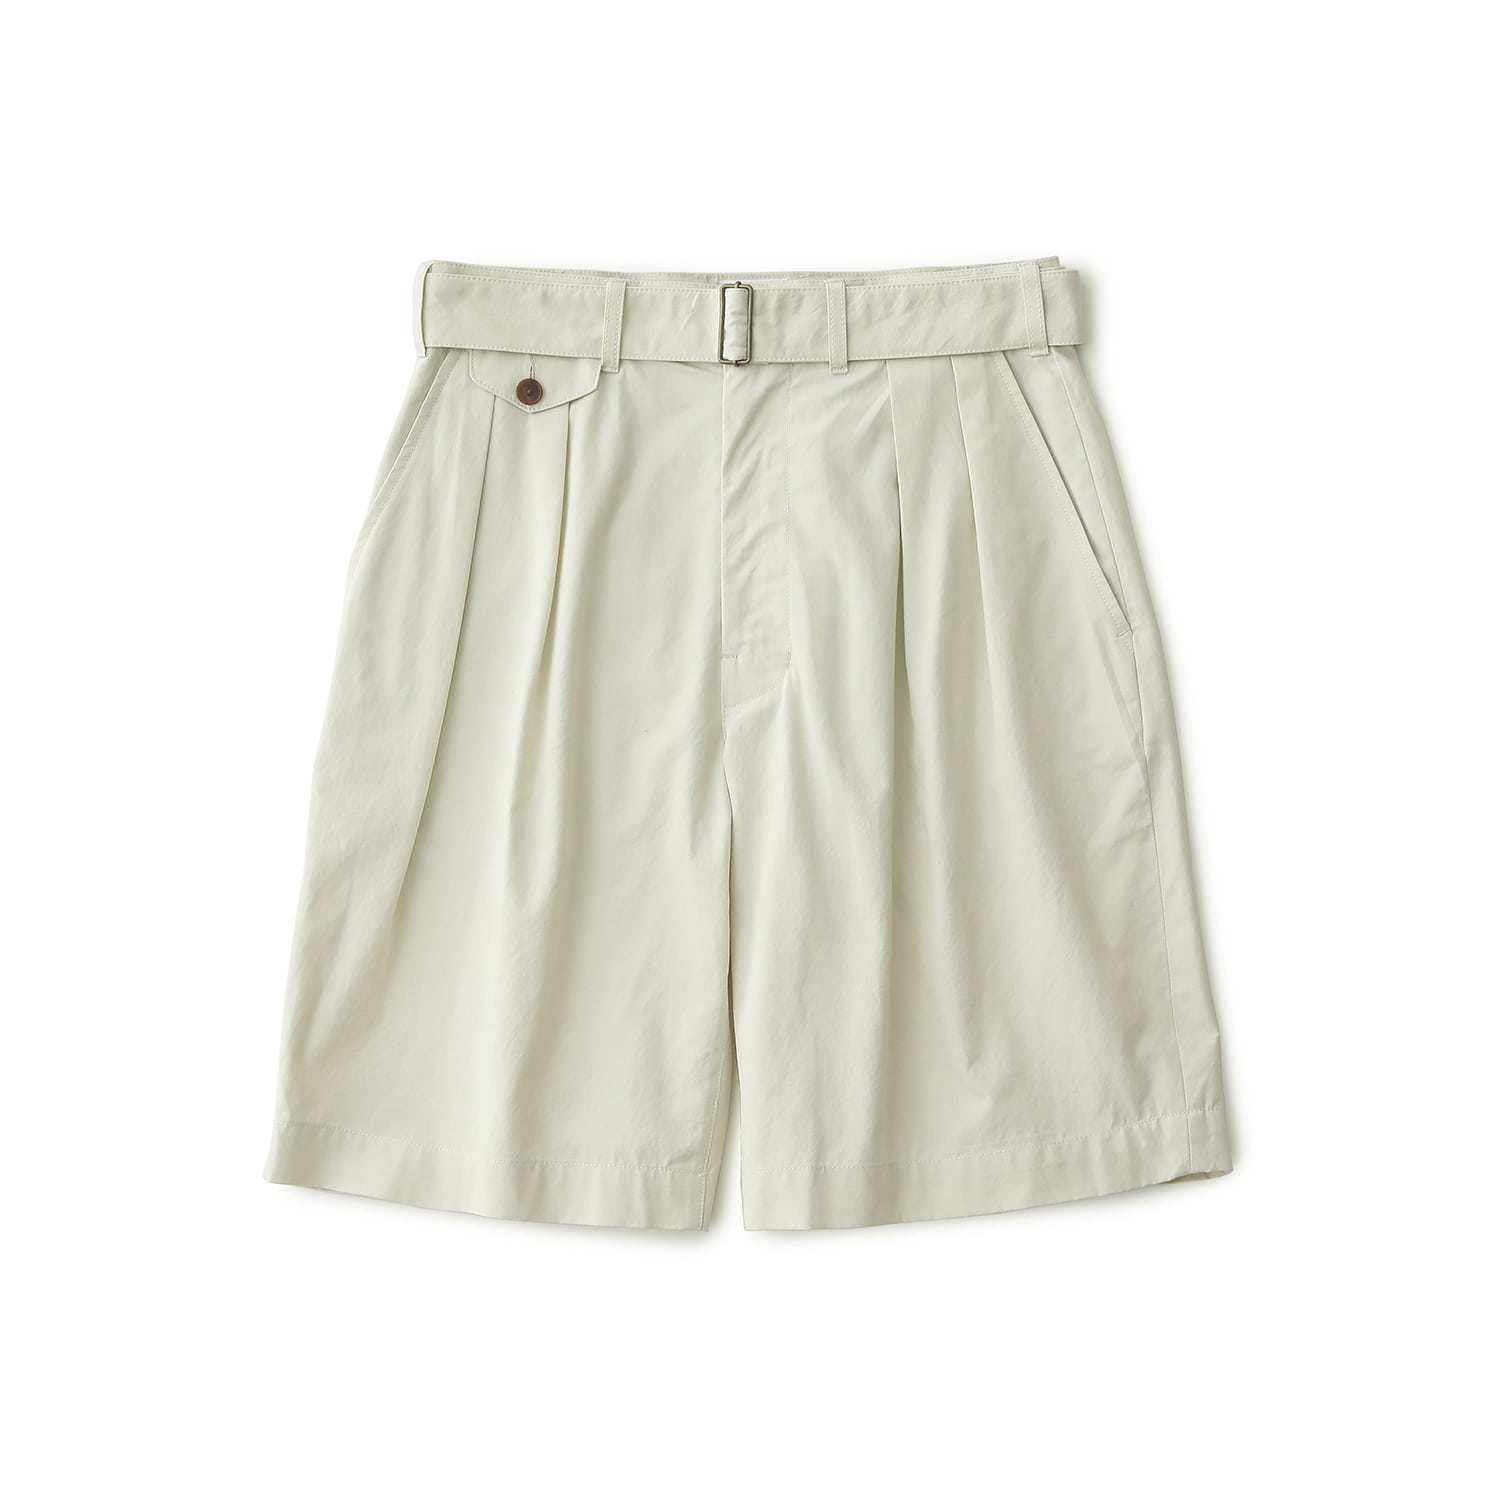 25% OFF_HEMINGWAY BELTED SHORTS (Coconut)